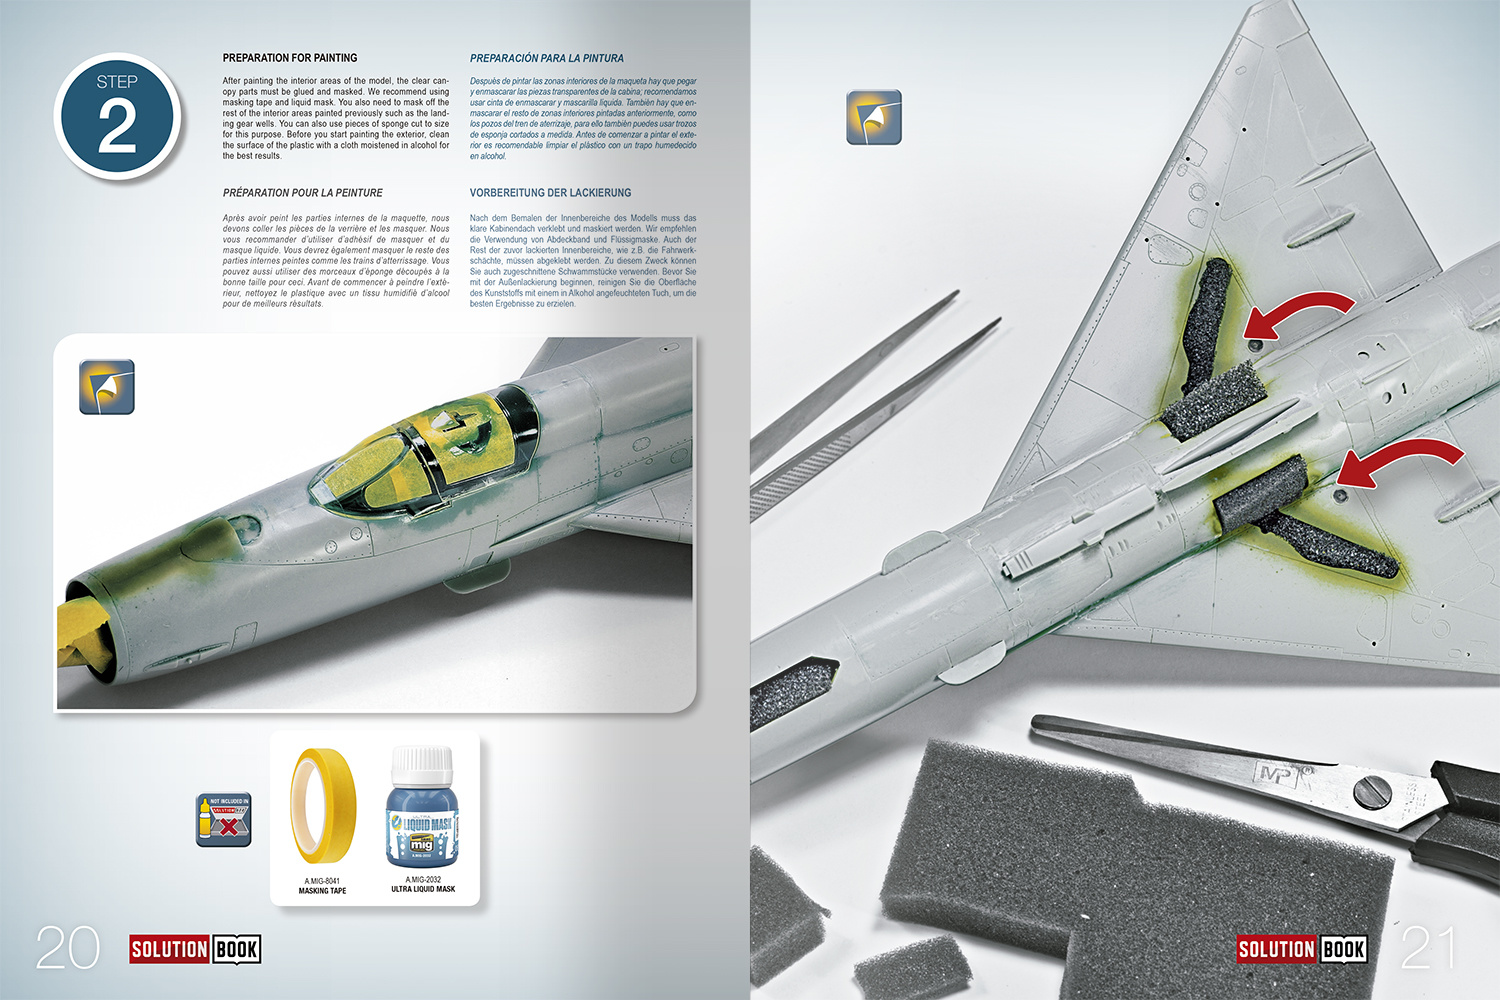 Ammo by Mig Jimenez Solution Book 08 How To Paint Bare Metal Aircraft. Colors And Weathering System - Ammo by Mig Jimenez - A.MIG-6521